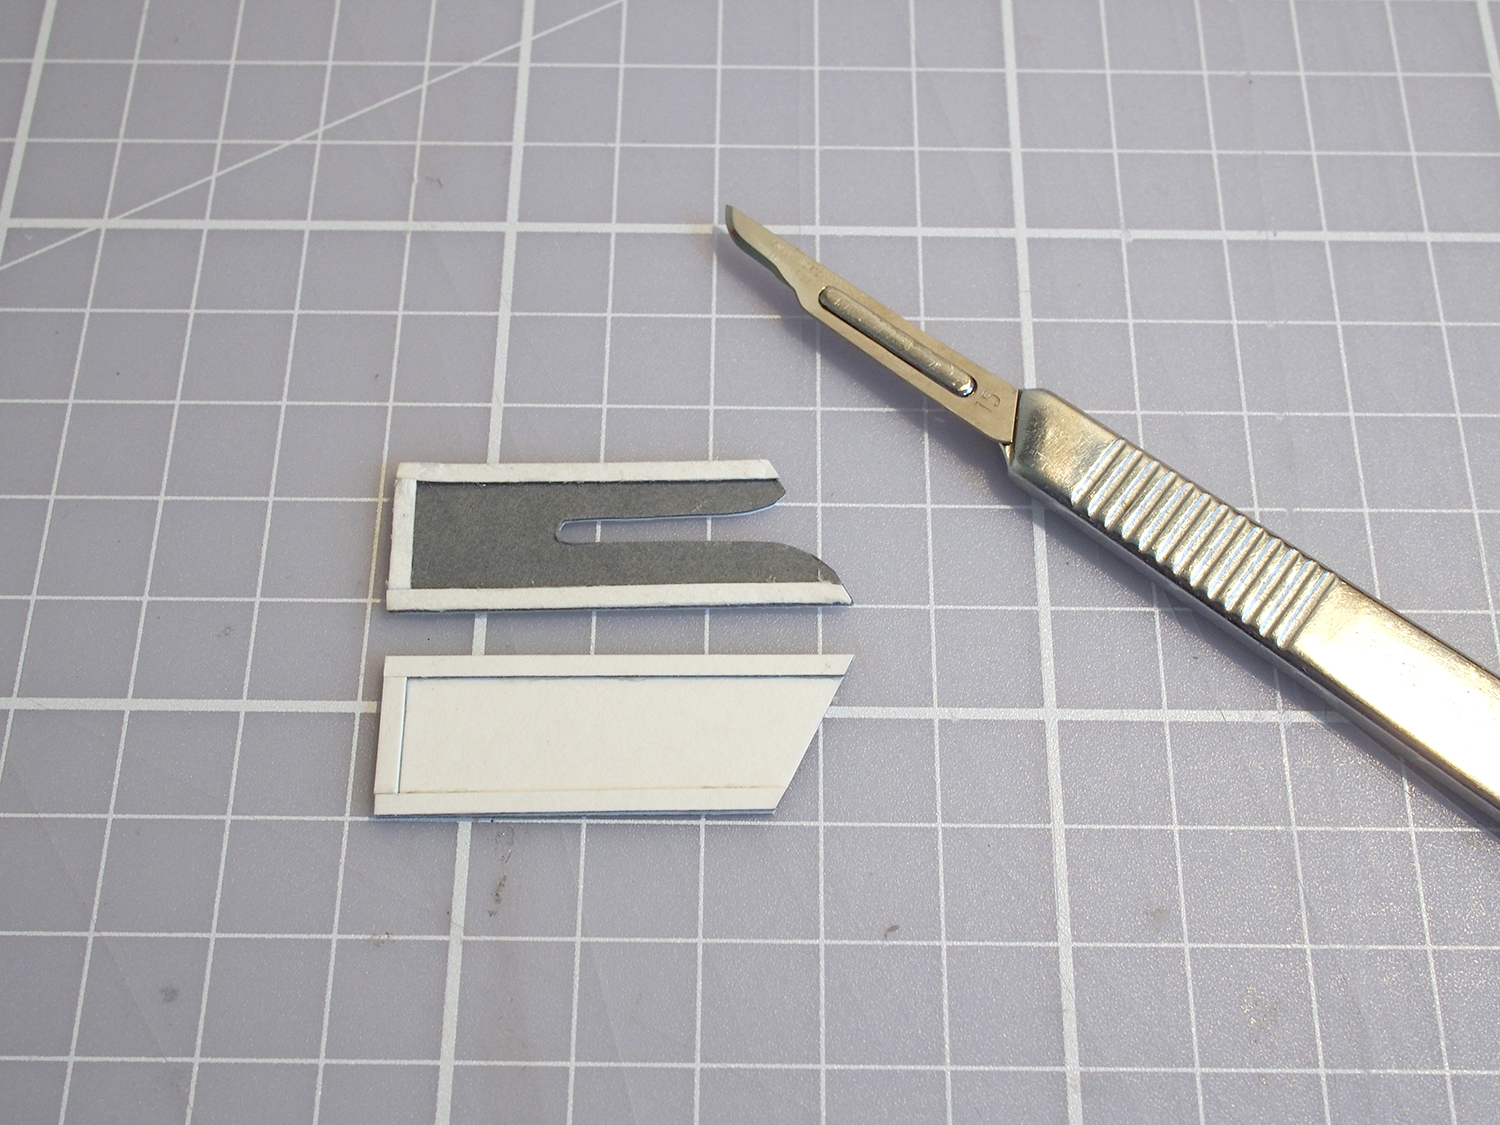 Then I  glued little strips of card on each side; together they account for the thickness of the blade/handle.